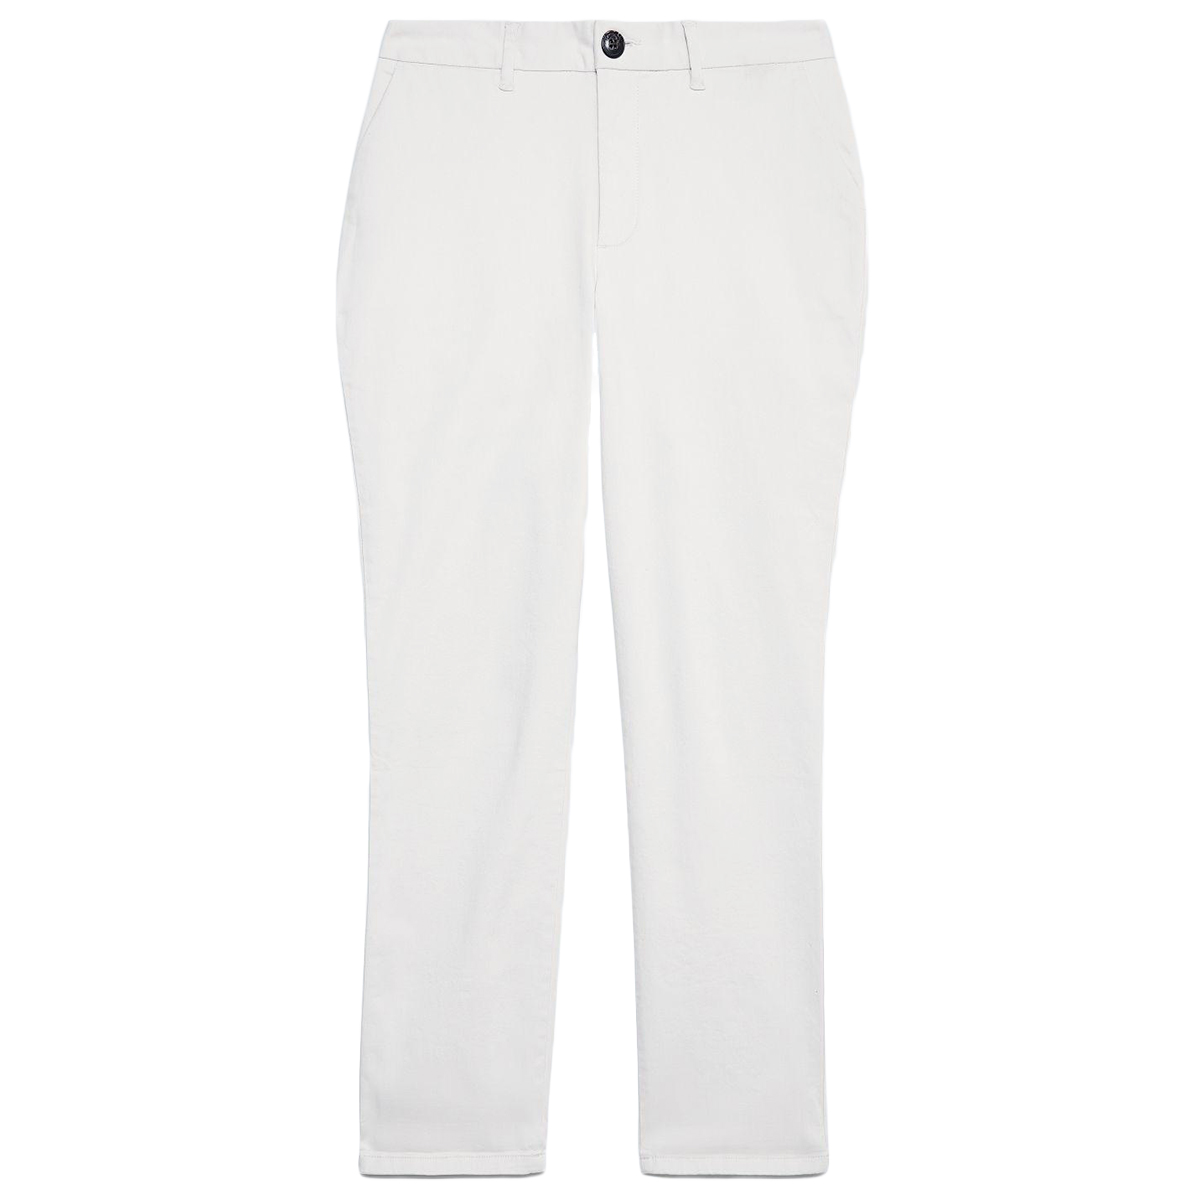 Jack Wills Women's Mollins Casual Classic Chino Pants - White, 10